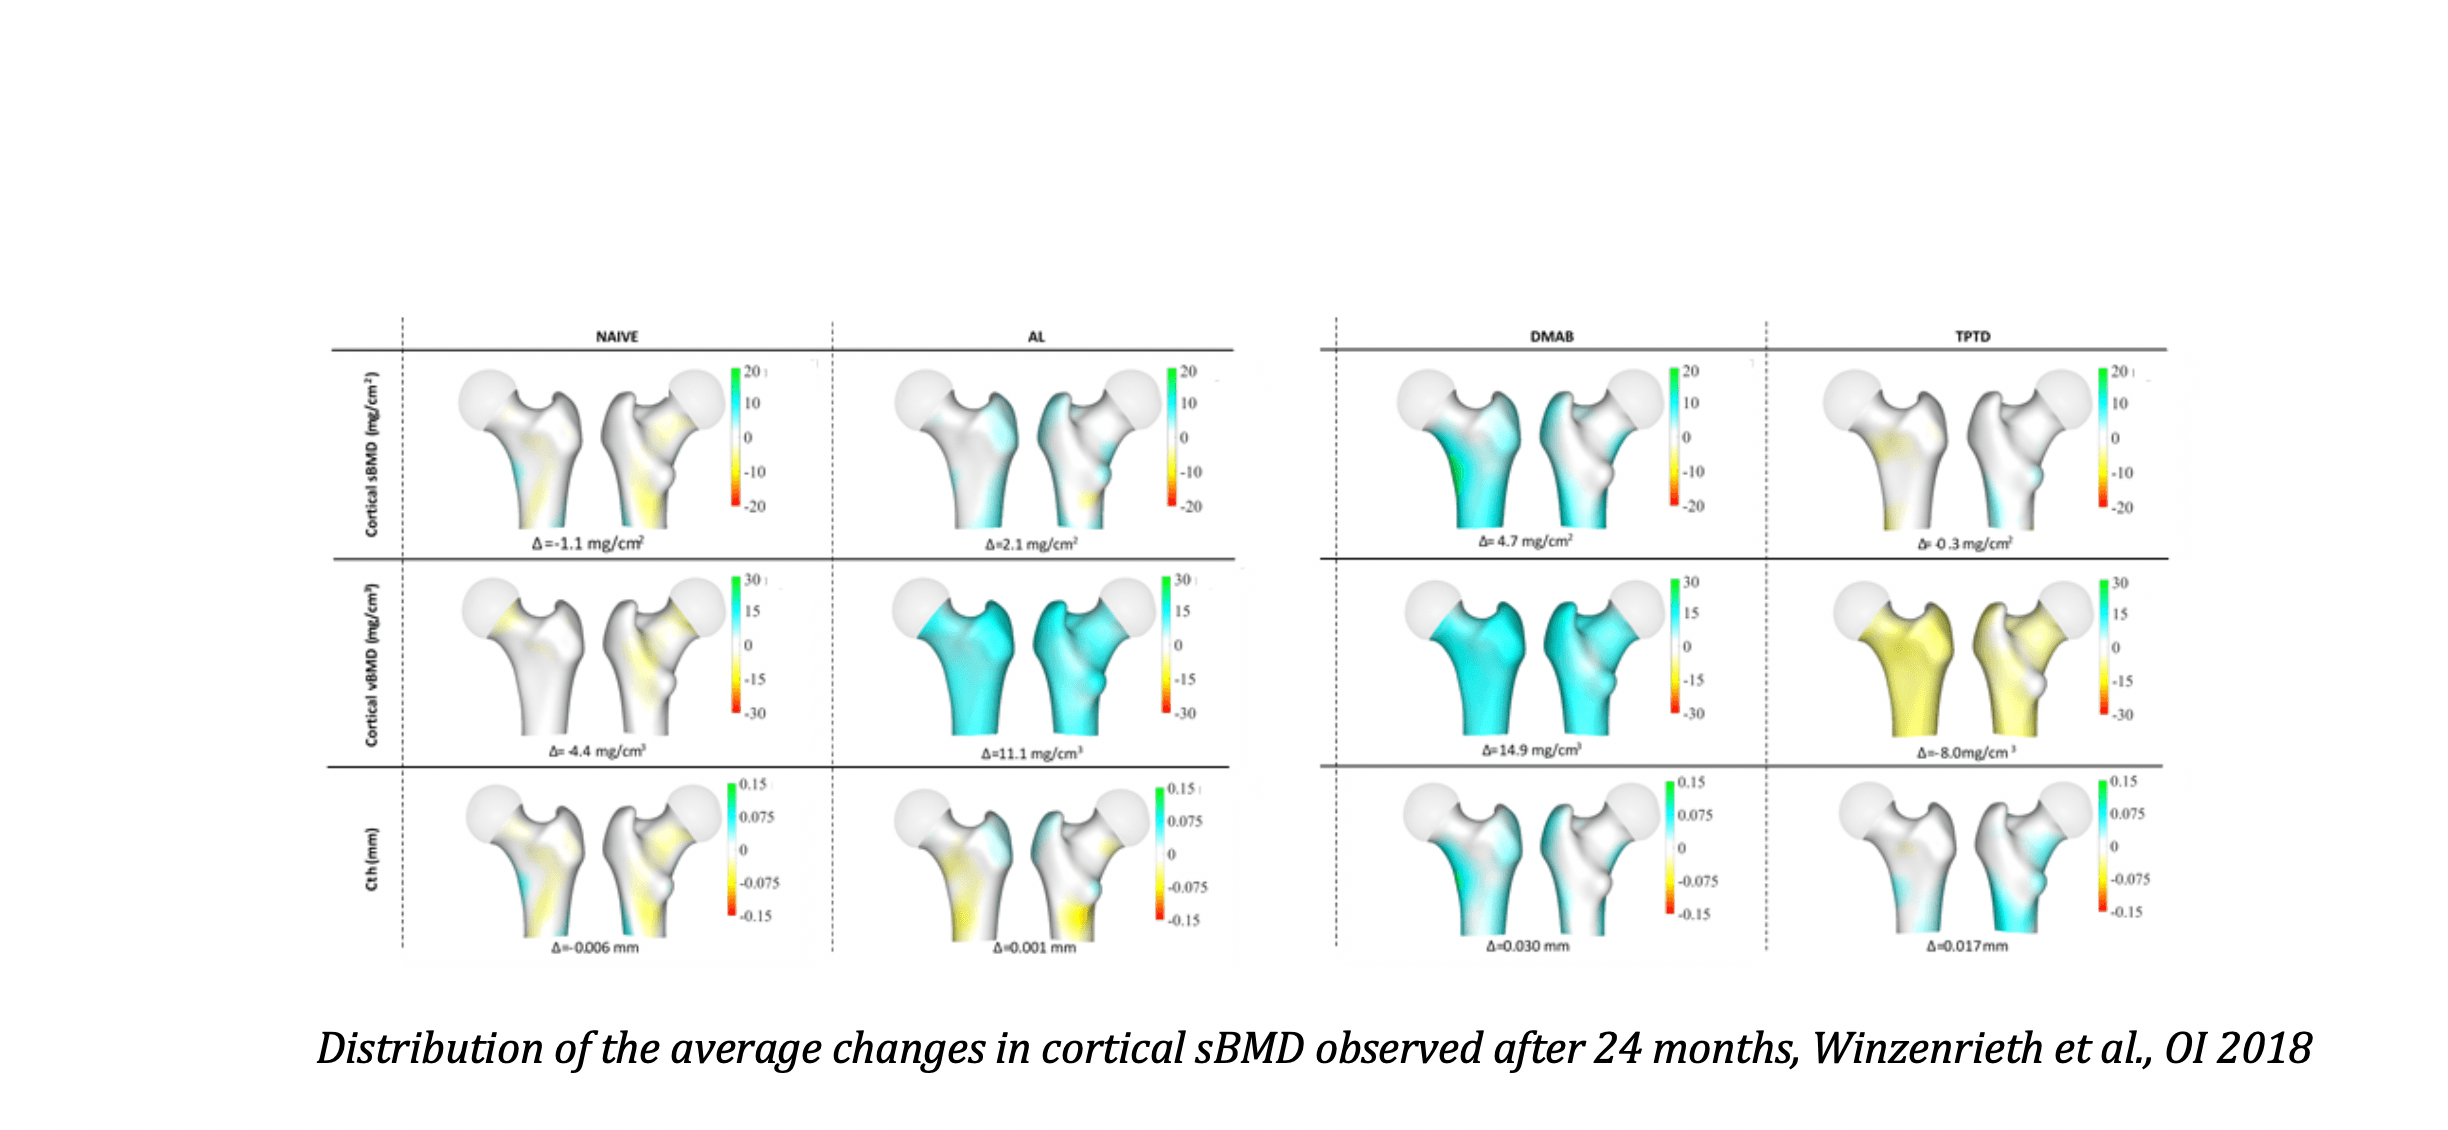 Distribution of the average changes in cortical bone observed after 24 months, Winzenrieth et al., OI 2018